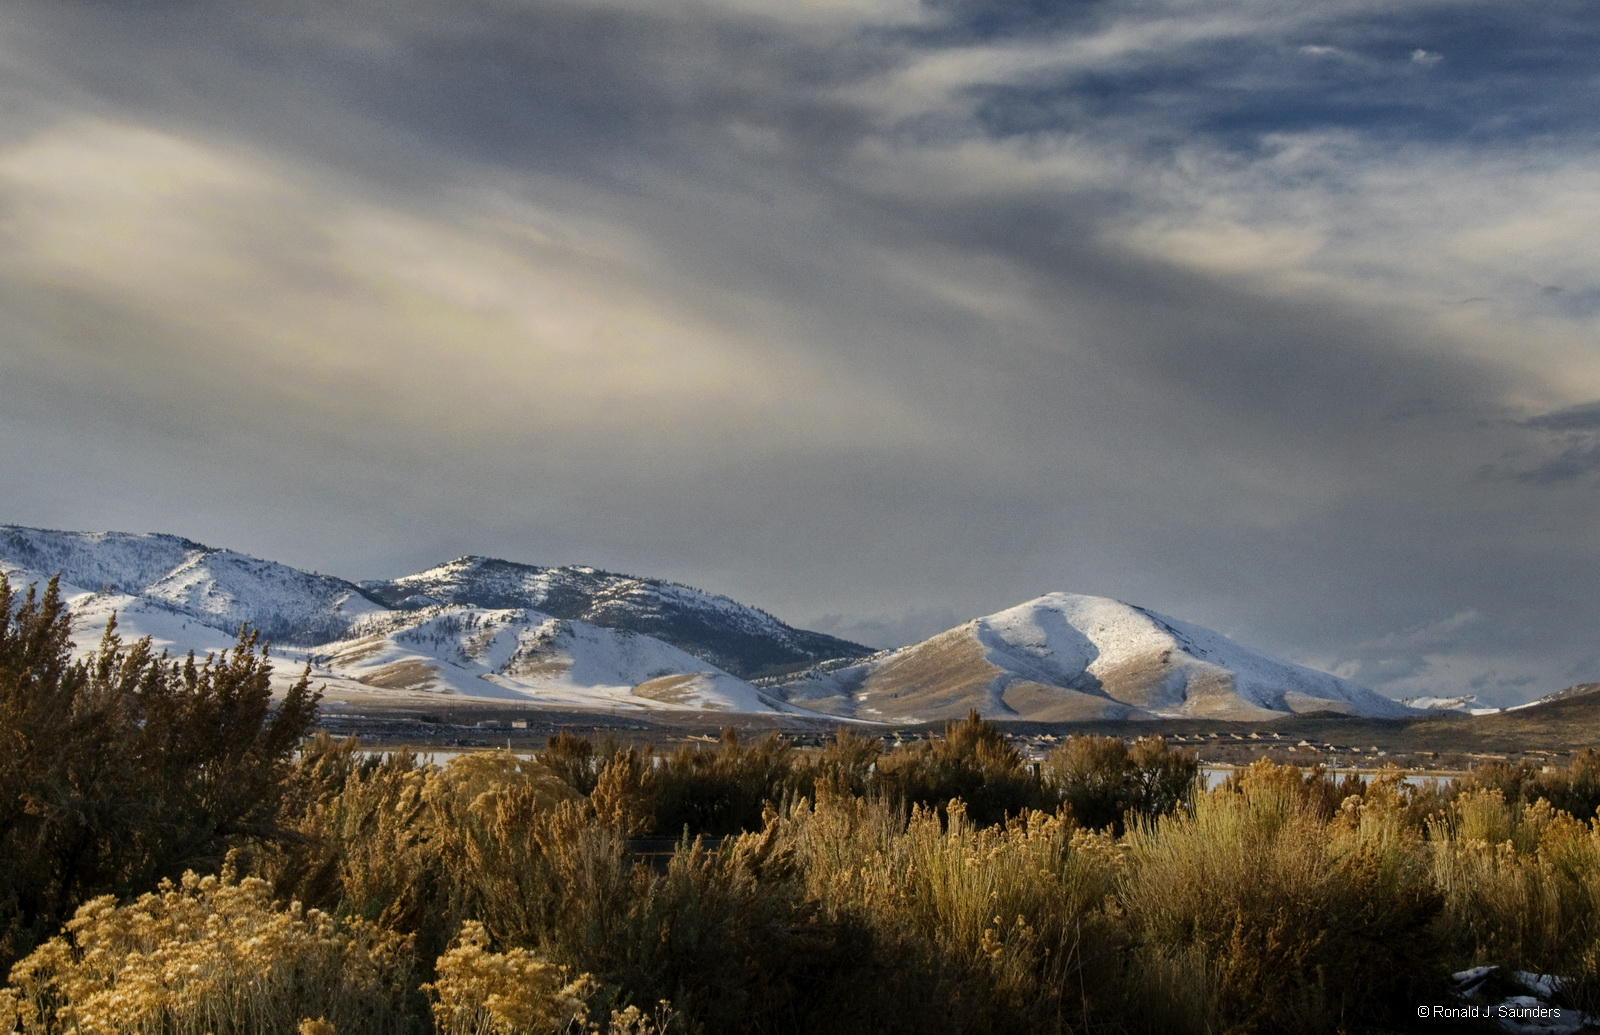 cold springs, nevada, desert, nevada, landscape, christmas, snow, photo